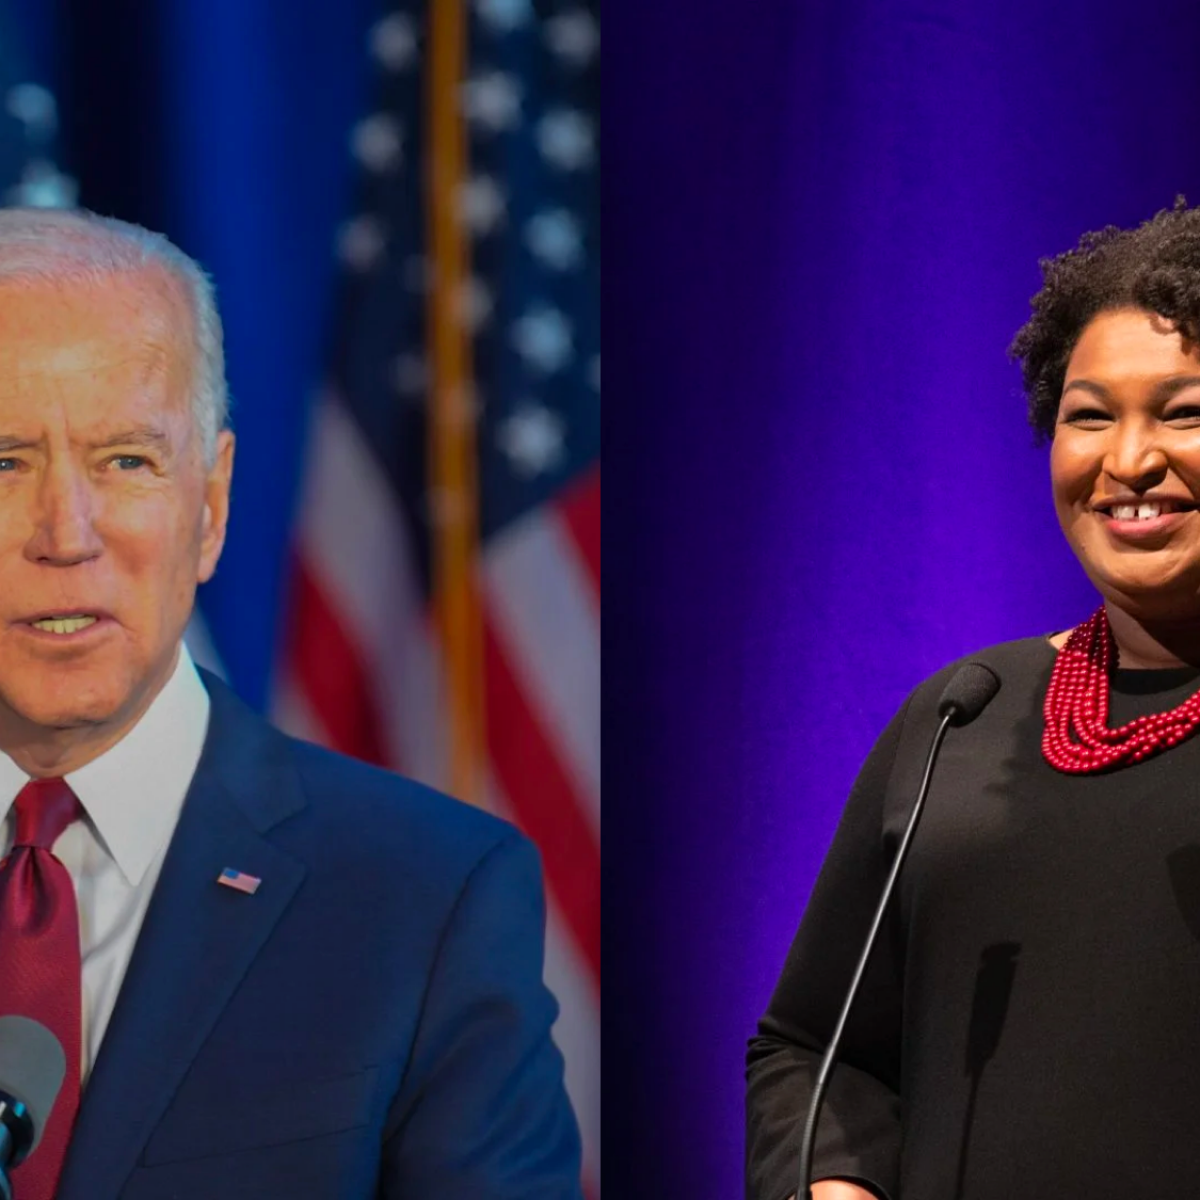 Clyburn Urges Biden To Choose Stacey Abrams, Another Black Woman As Running Mate